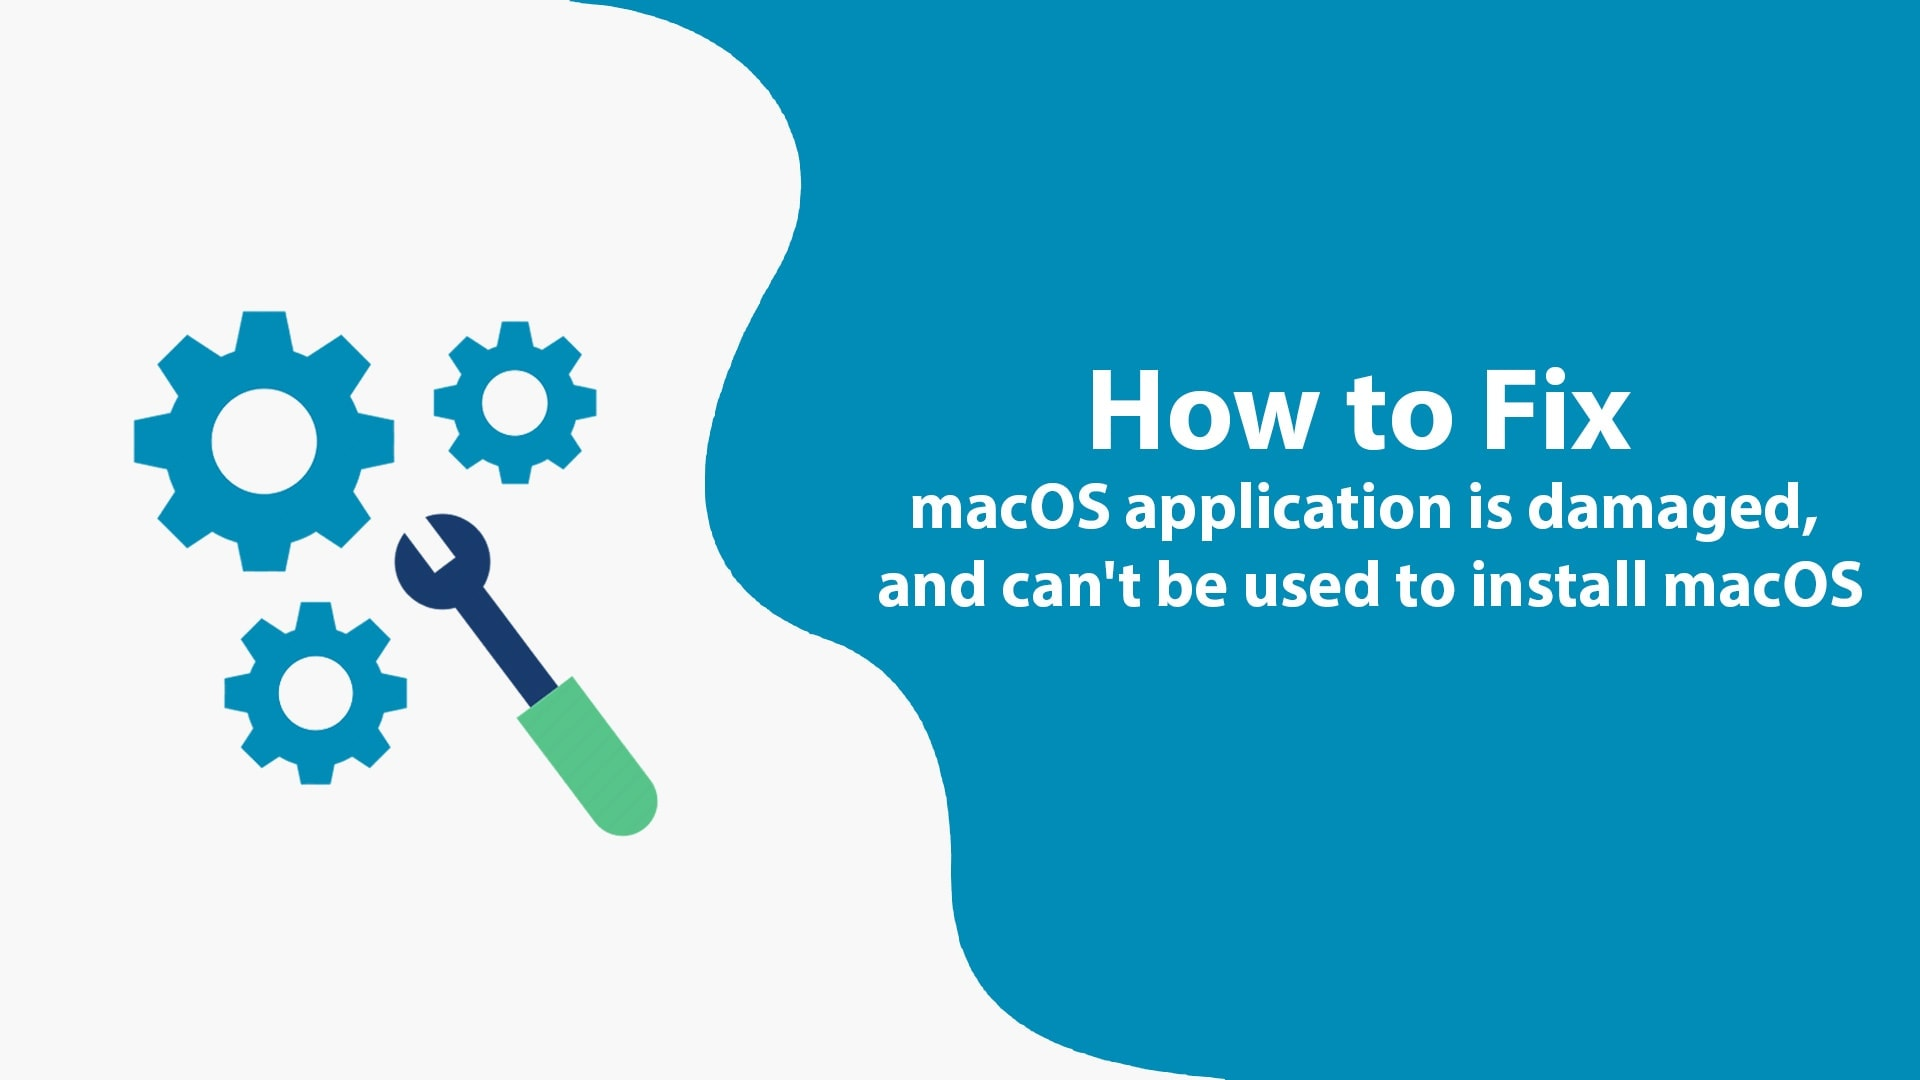 How to Fix macOS application is damaged, and can't be used to install